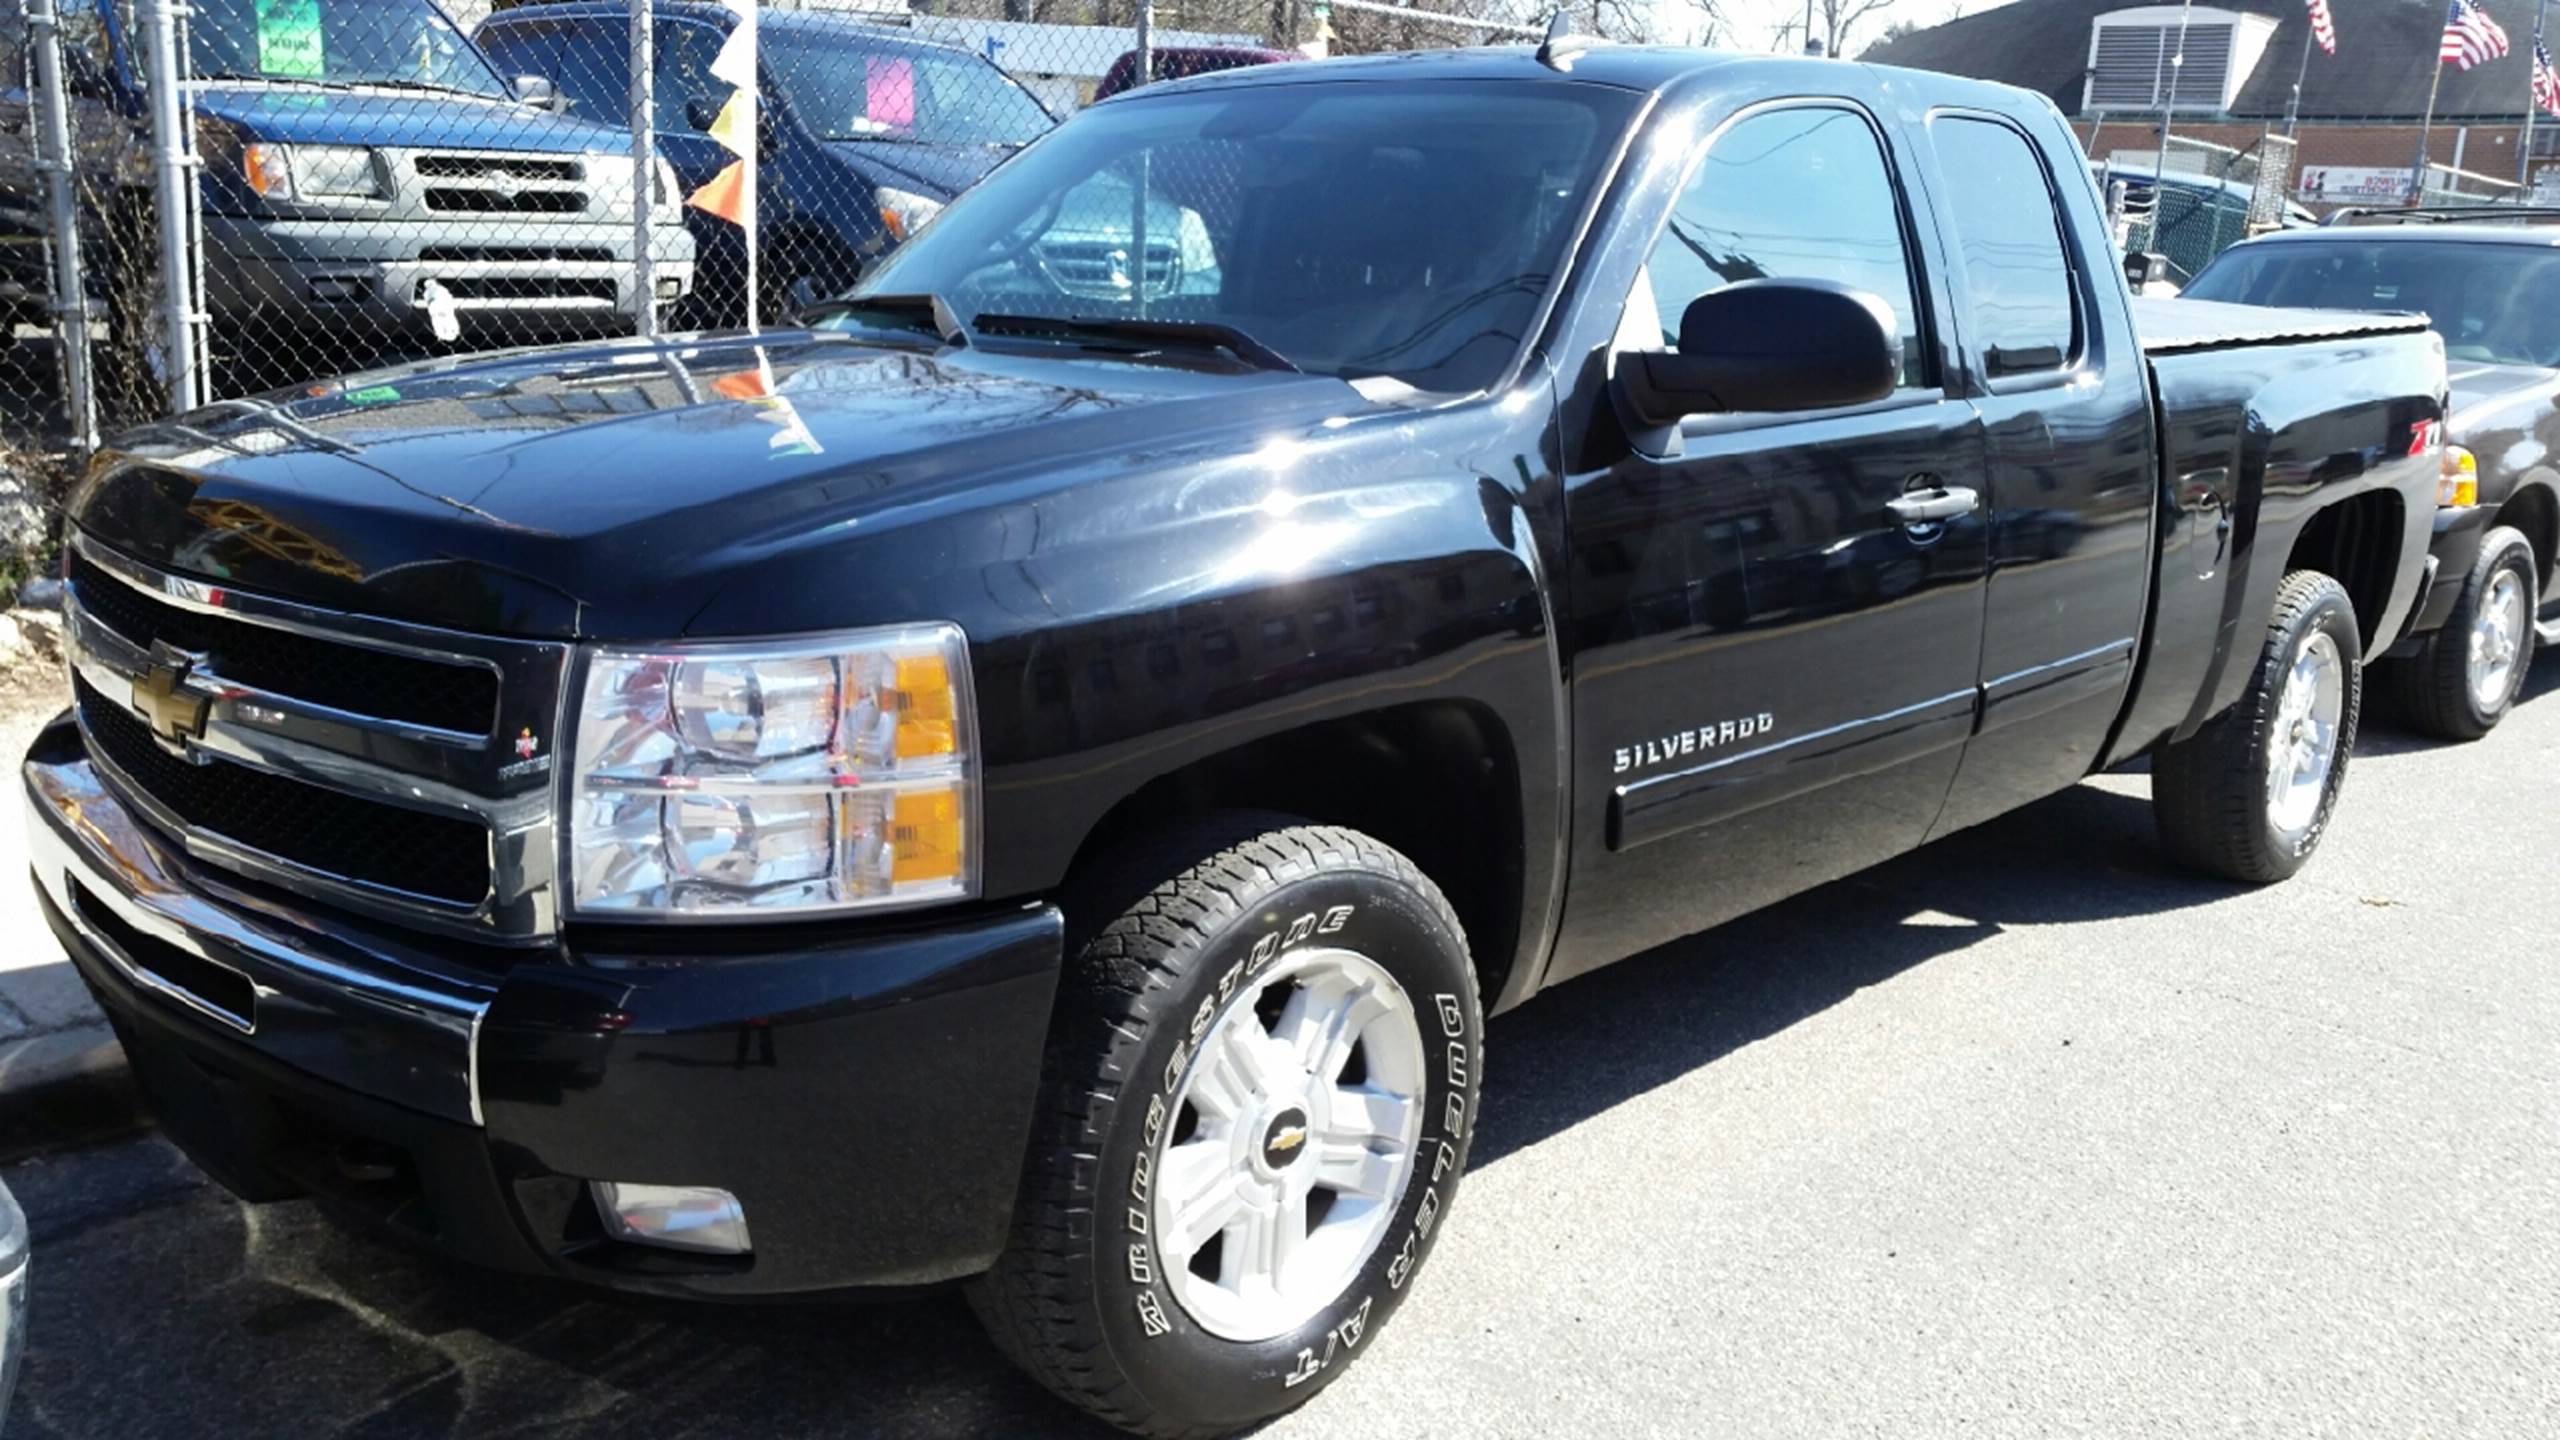 Used Chevrolet Trucks For Sale in Yonkers, NY - Carsforsale.com